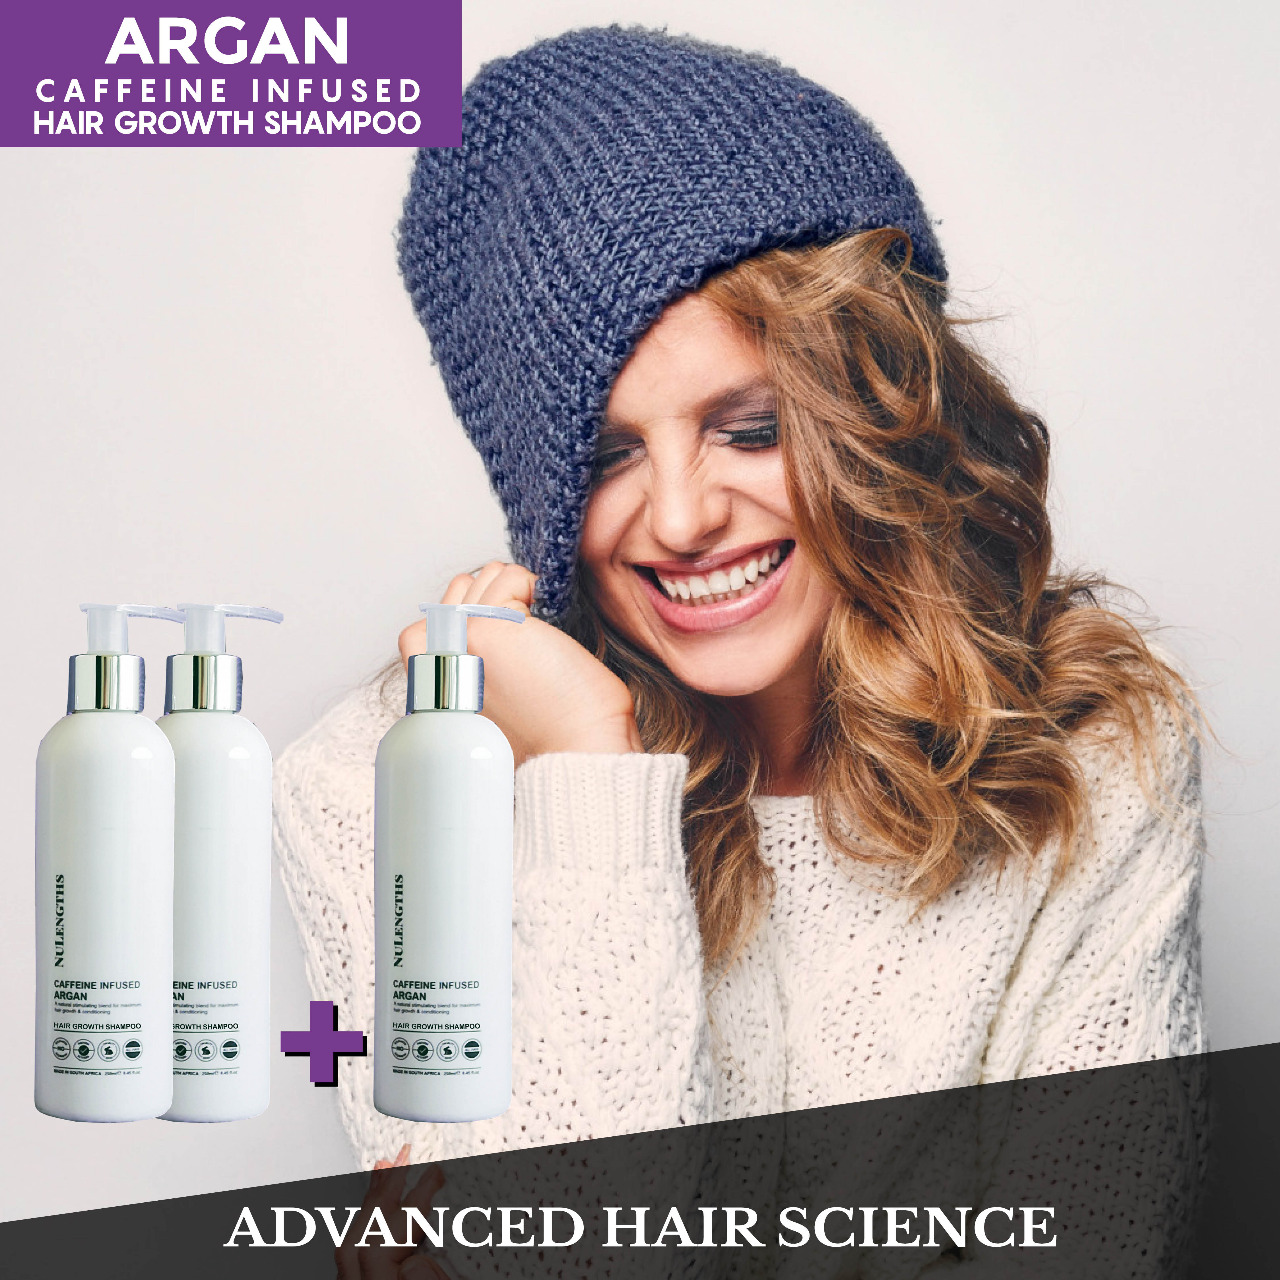 *Limited Special* Buy 2 get 1 Free Caffeine Infused Argan Hair Growth Shampoo